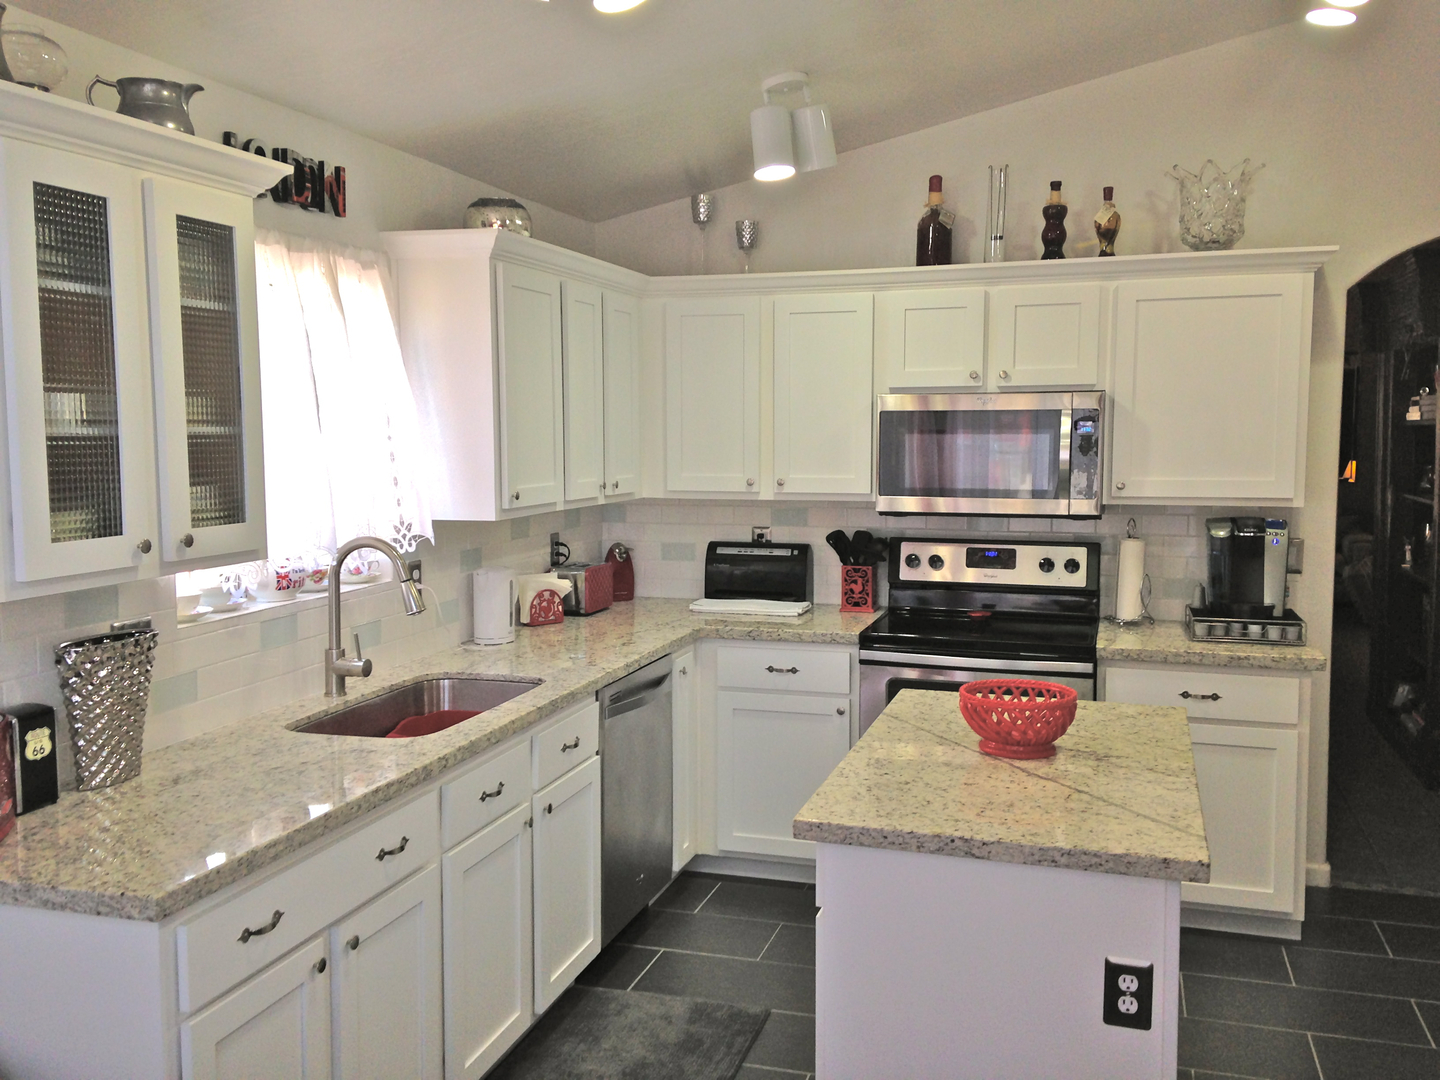 Refinishing Kitchen Cabinets, Refacing - Re-new Cabinets, Llc ...